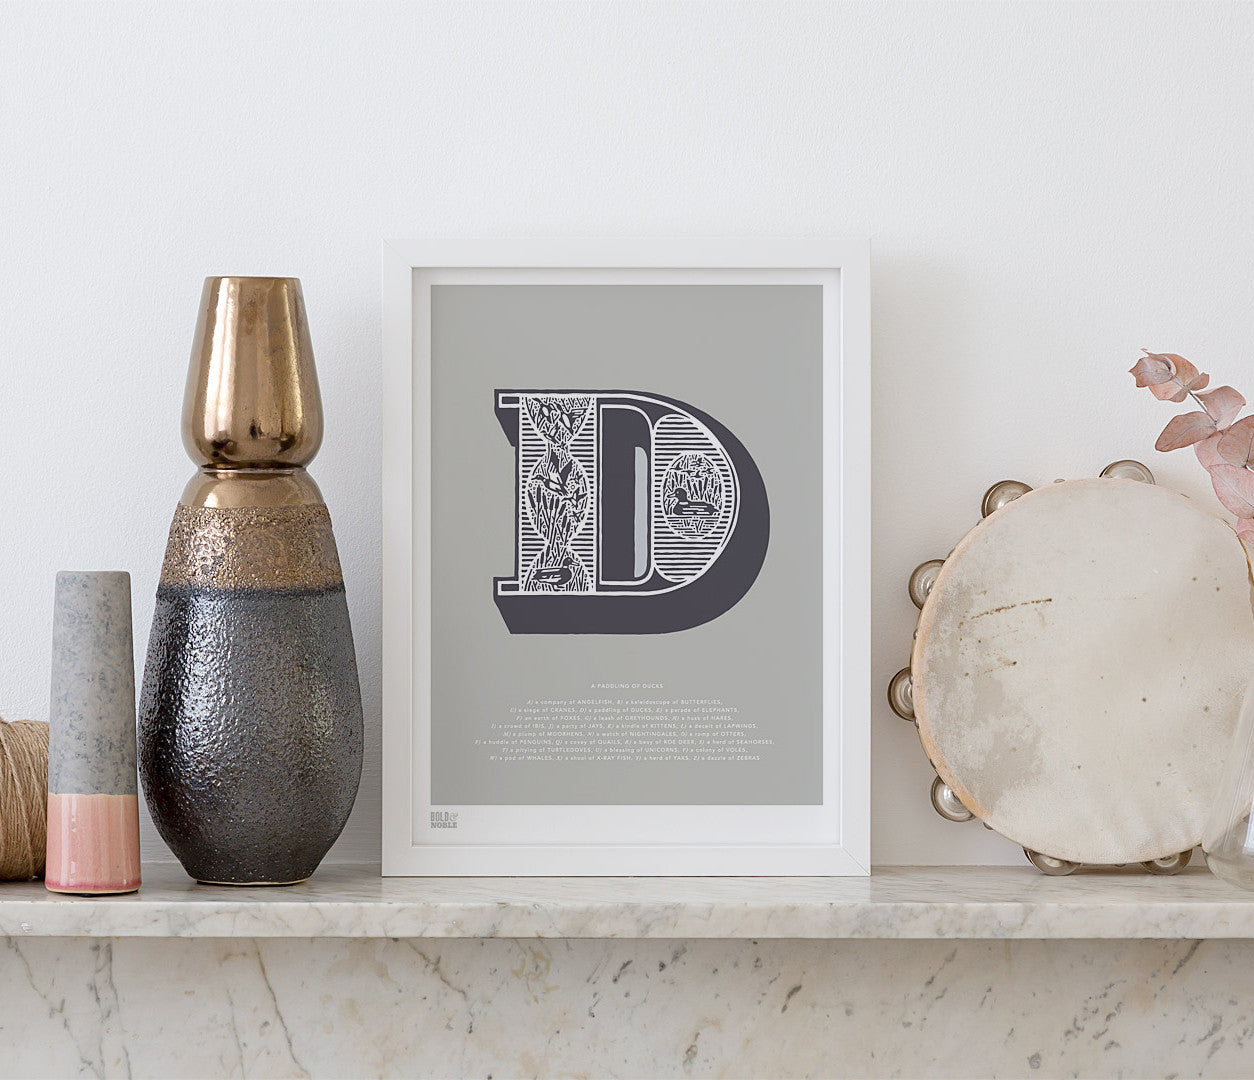 Pictures and Wall Art, Screen Printed Illustrated Letter D design in putty grey